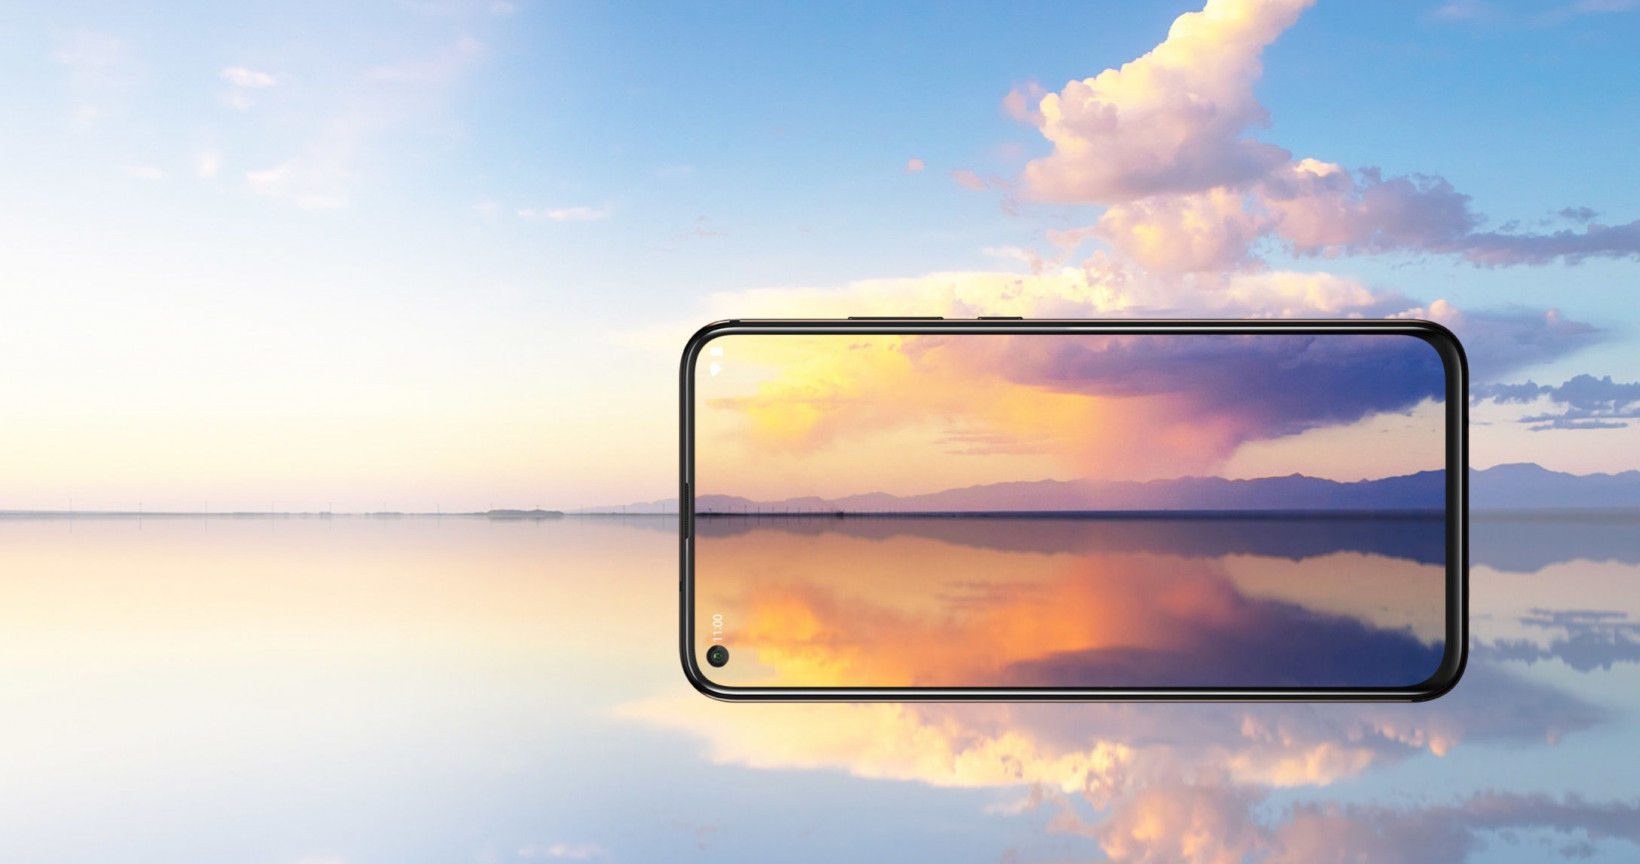 For Nokia's next trick, a 48MP smartphone with a punch-hole display